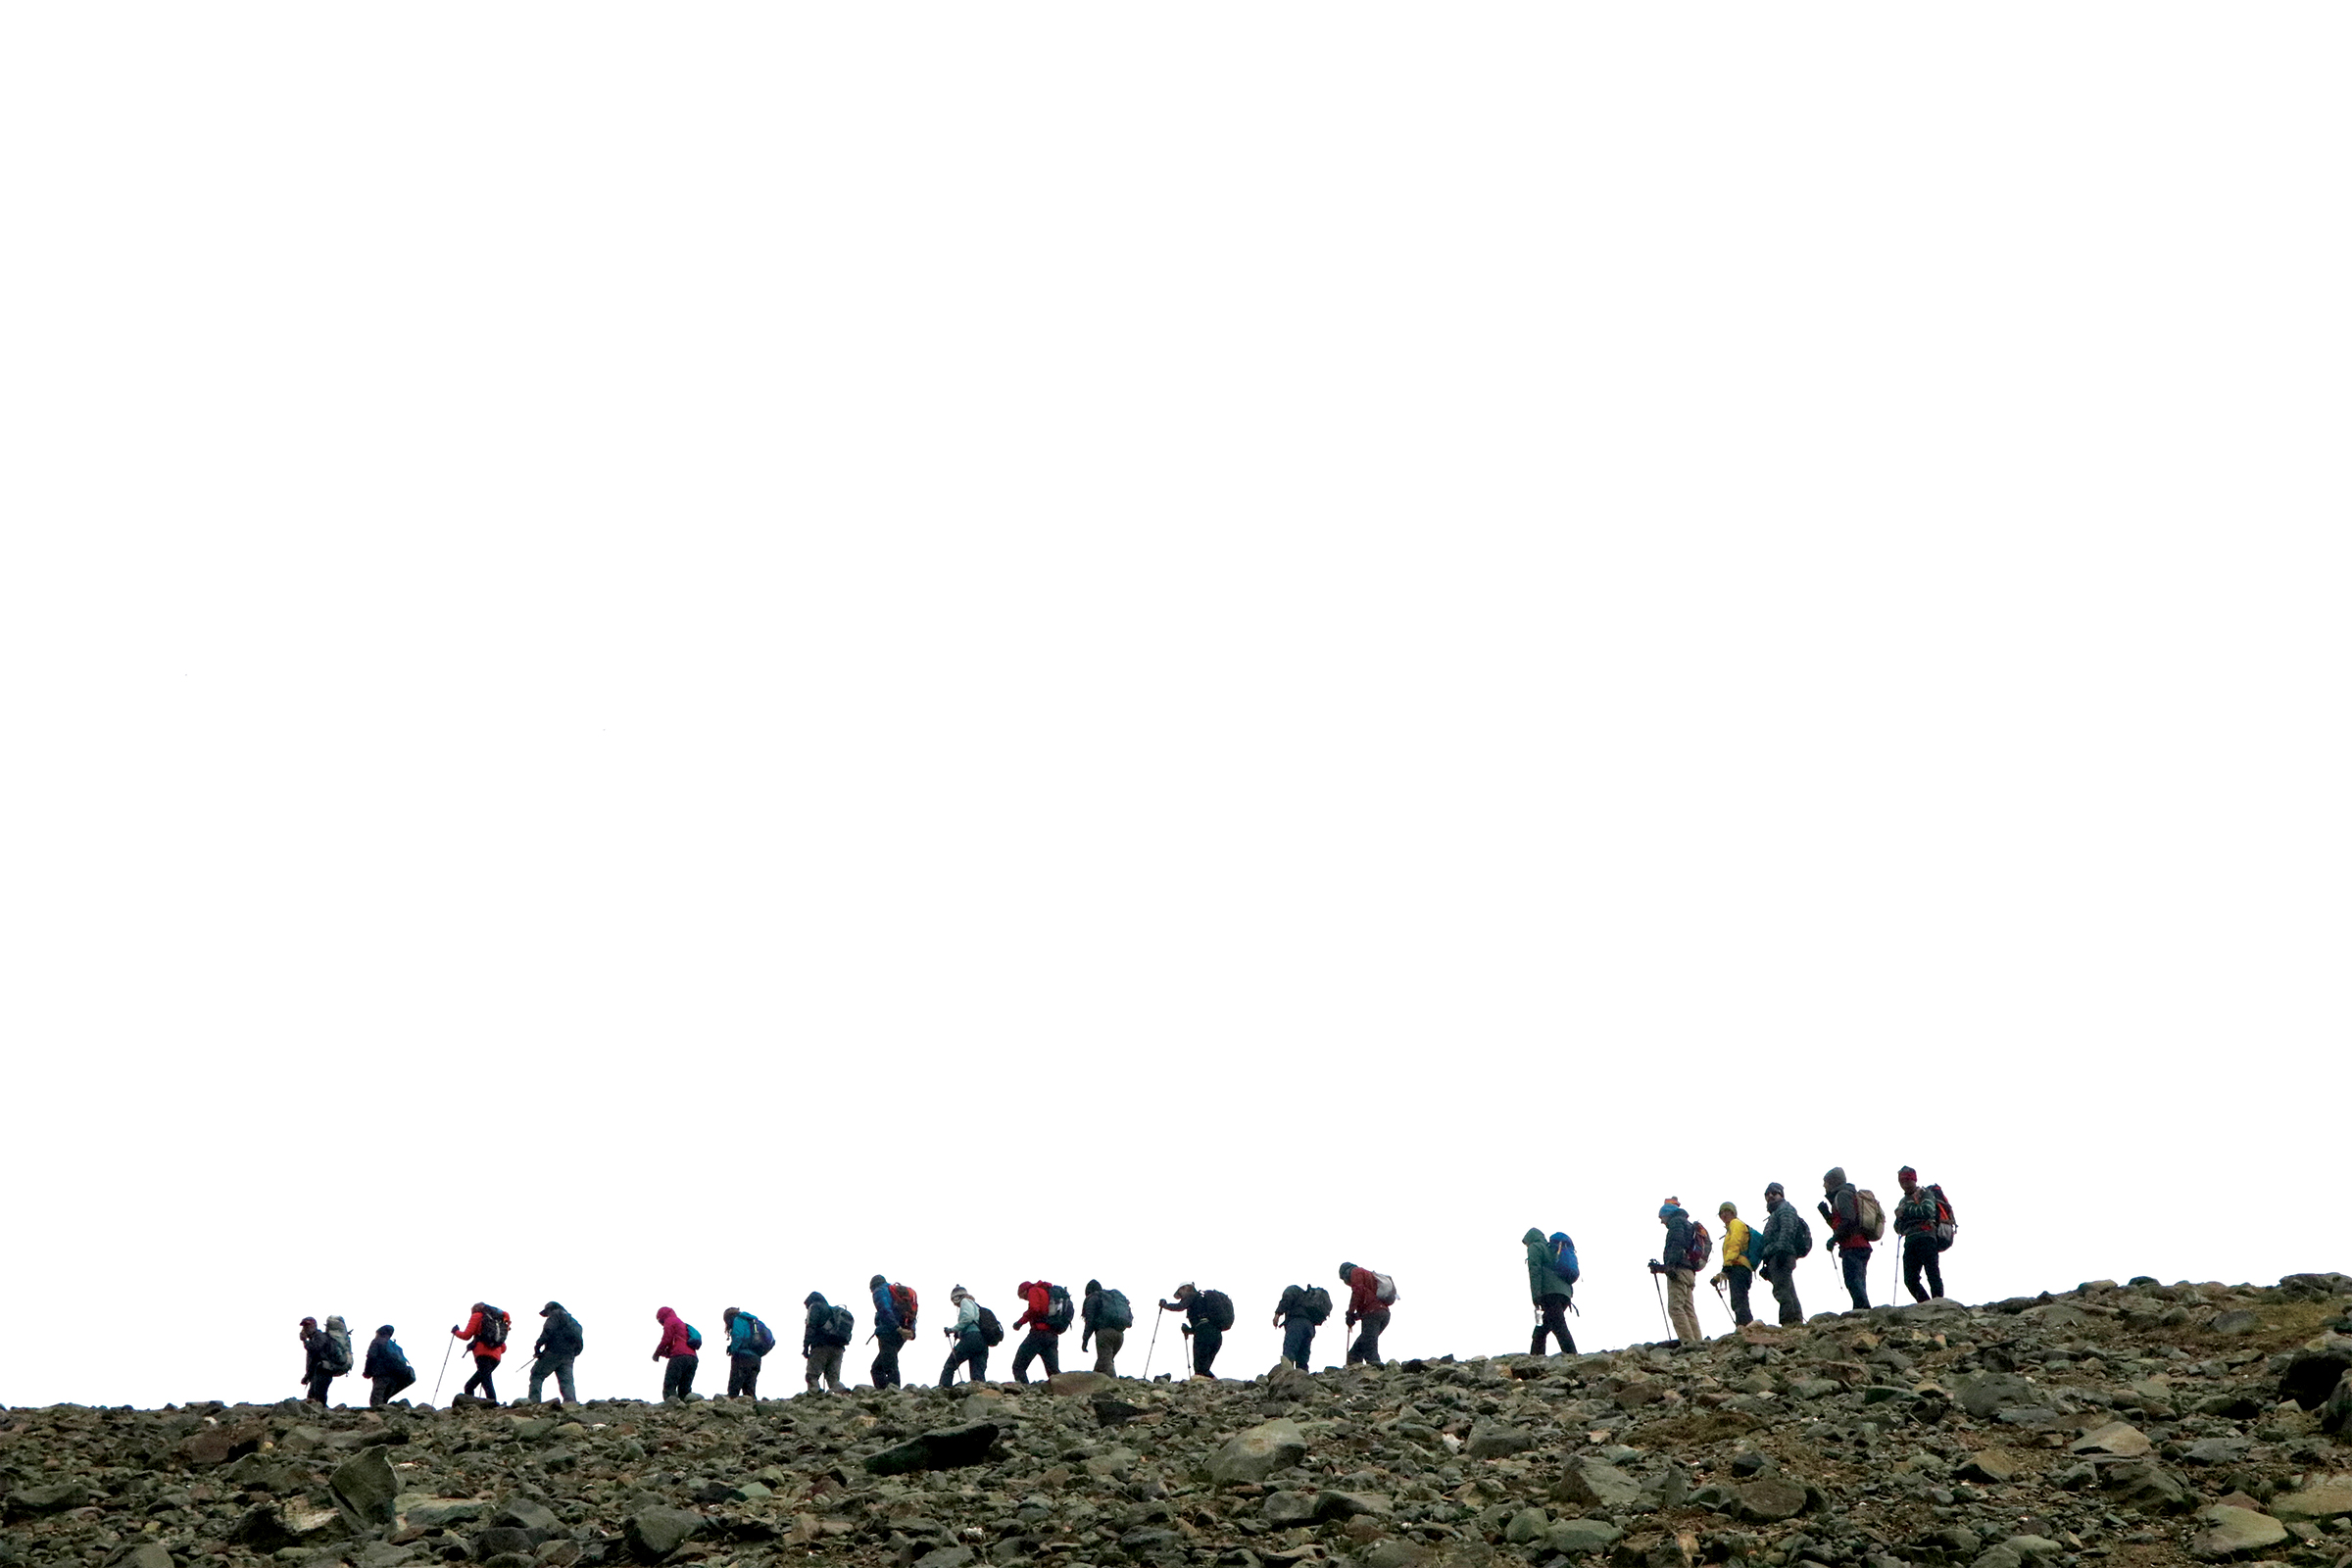 The GHE expedition team on the march. PICTURE CREDIT: GHE